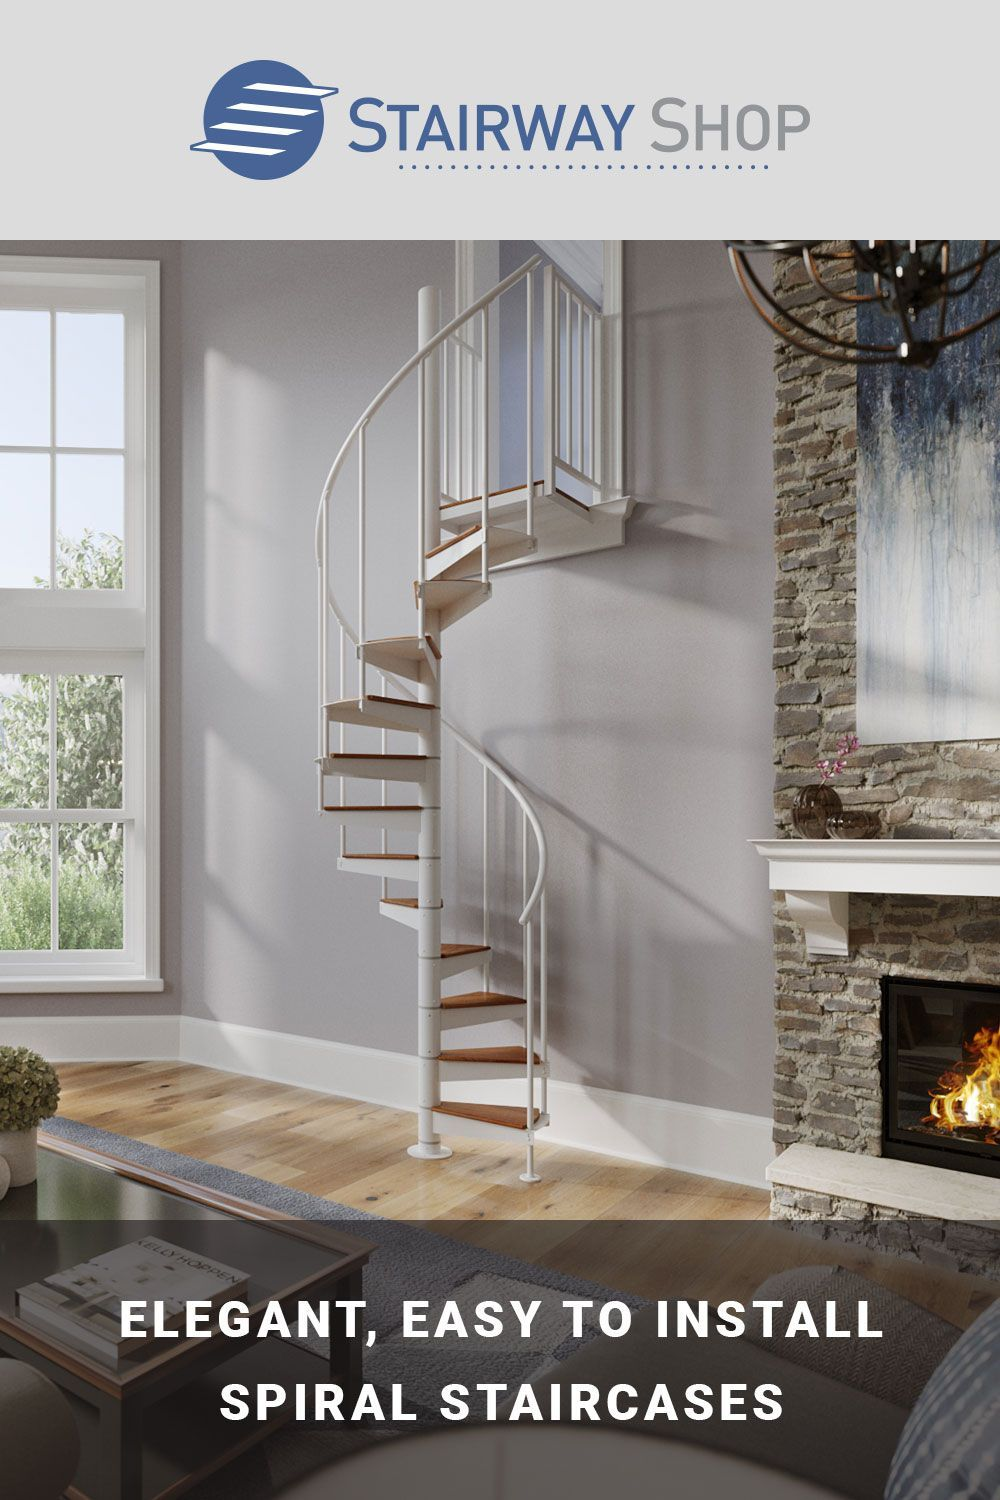 Spiral Staircase Remodel in 2020 Staircase remodel